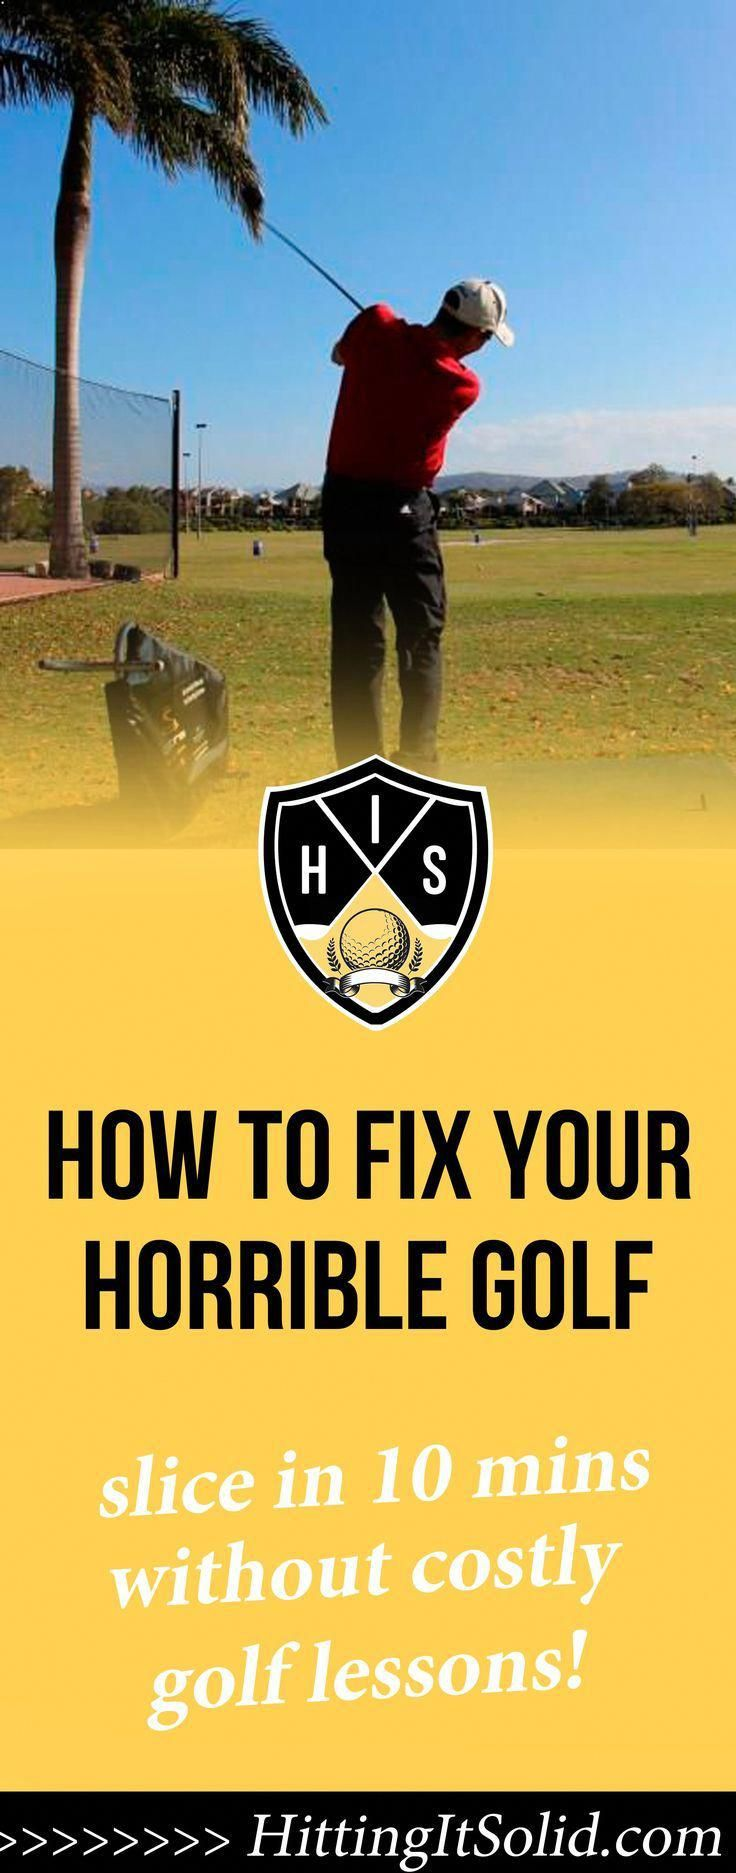 Learn how to fix your horrible golf slice in just 10